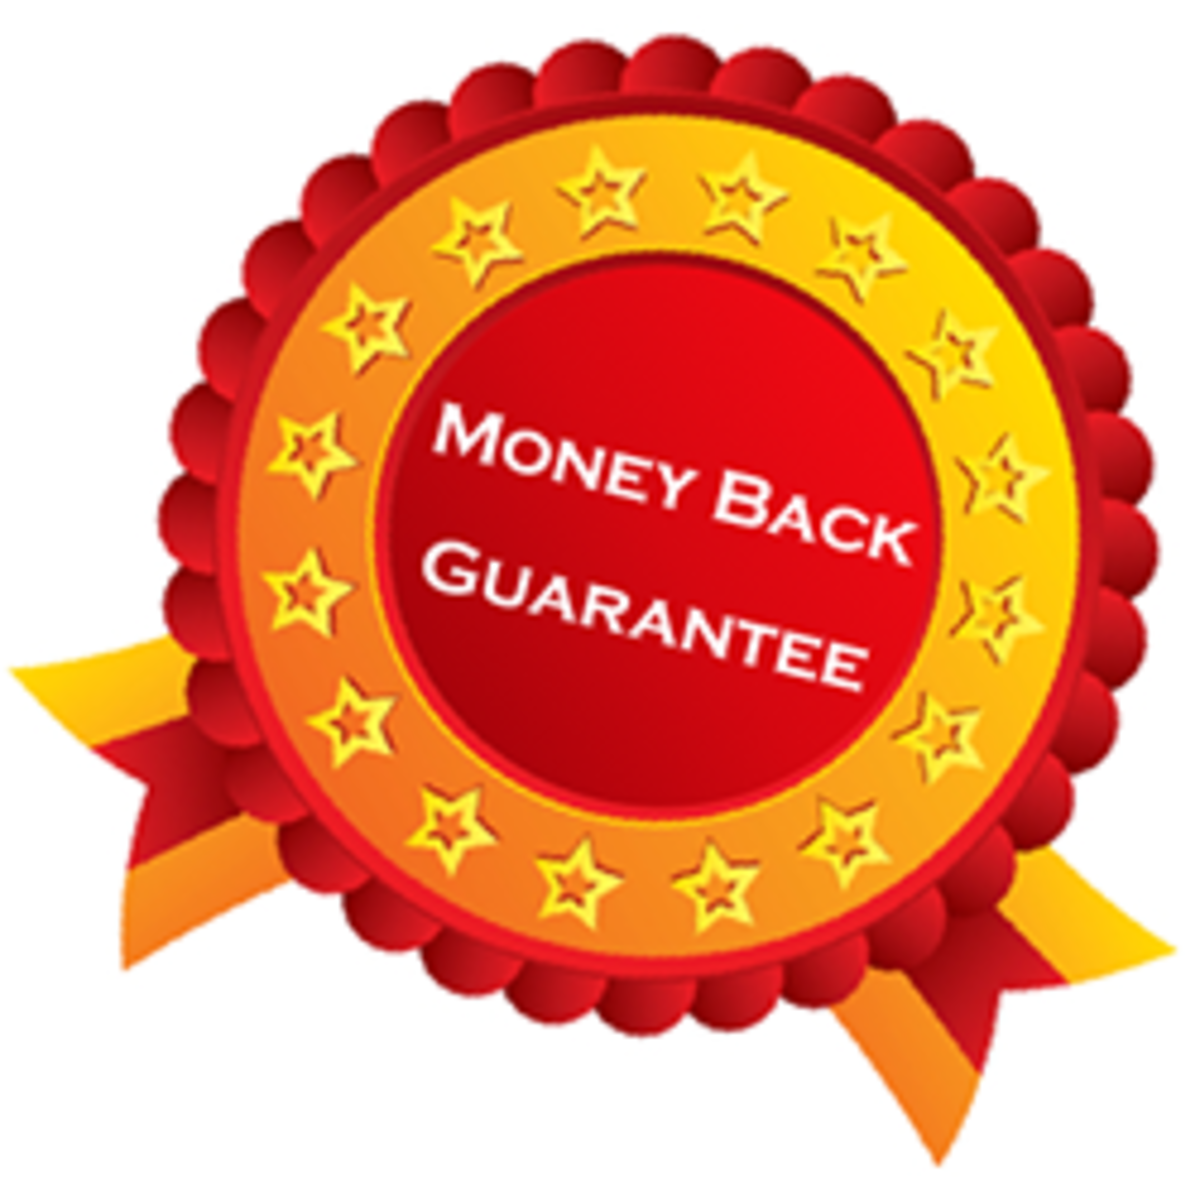 Antibody money back guarantee